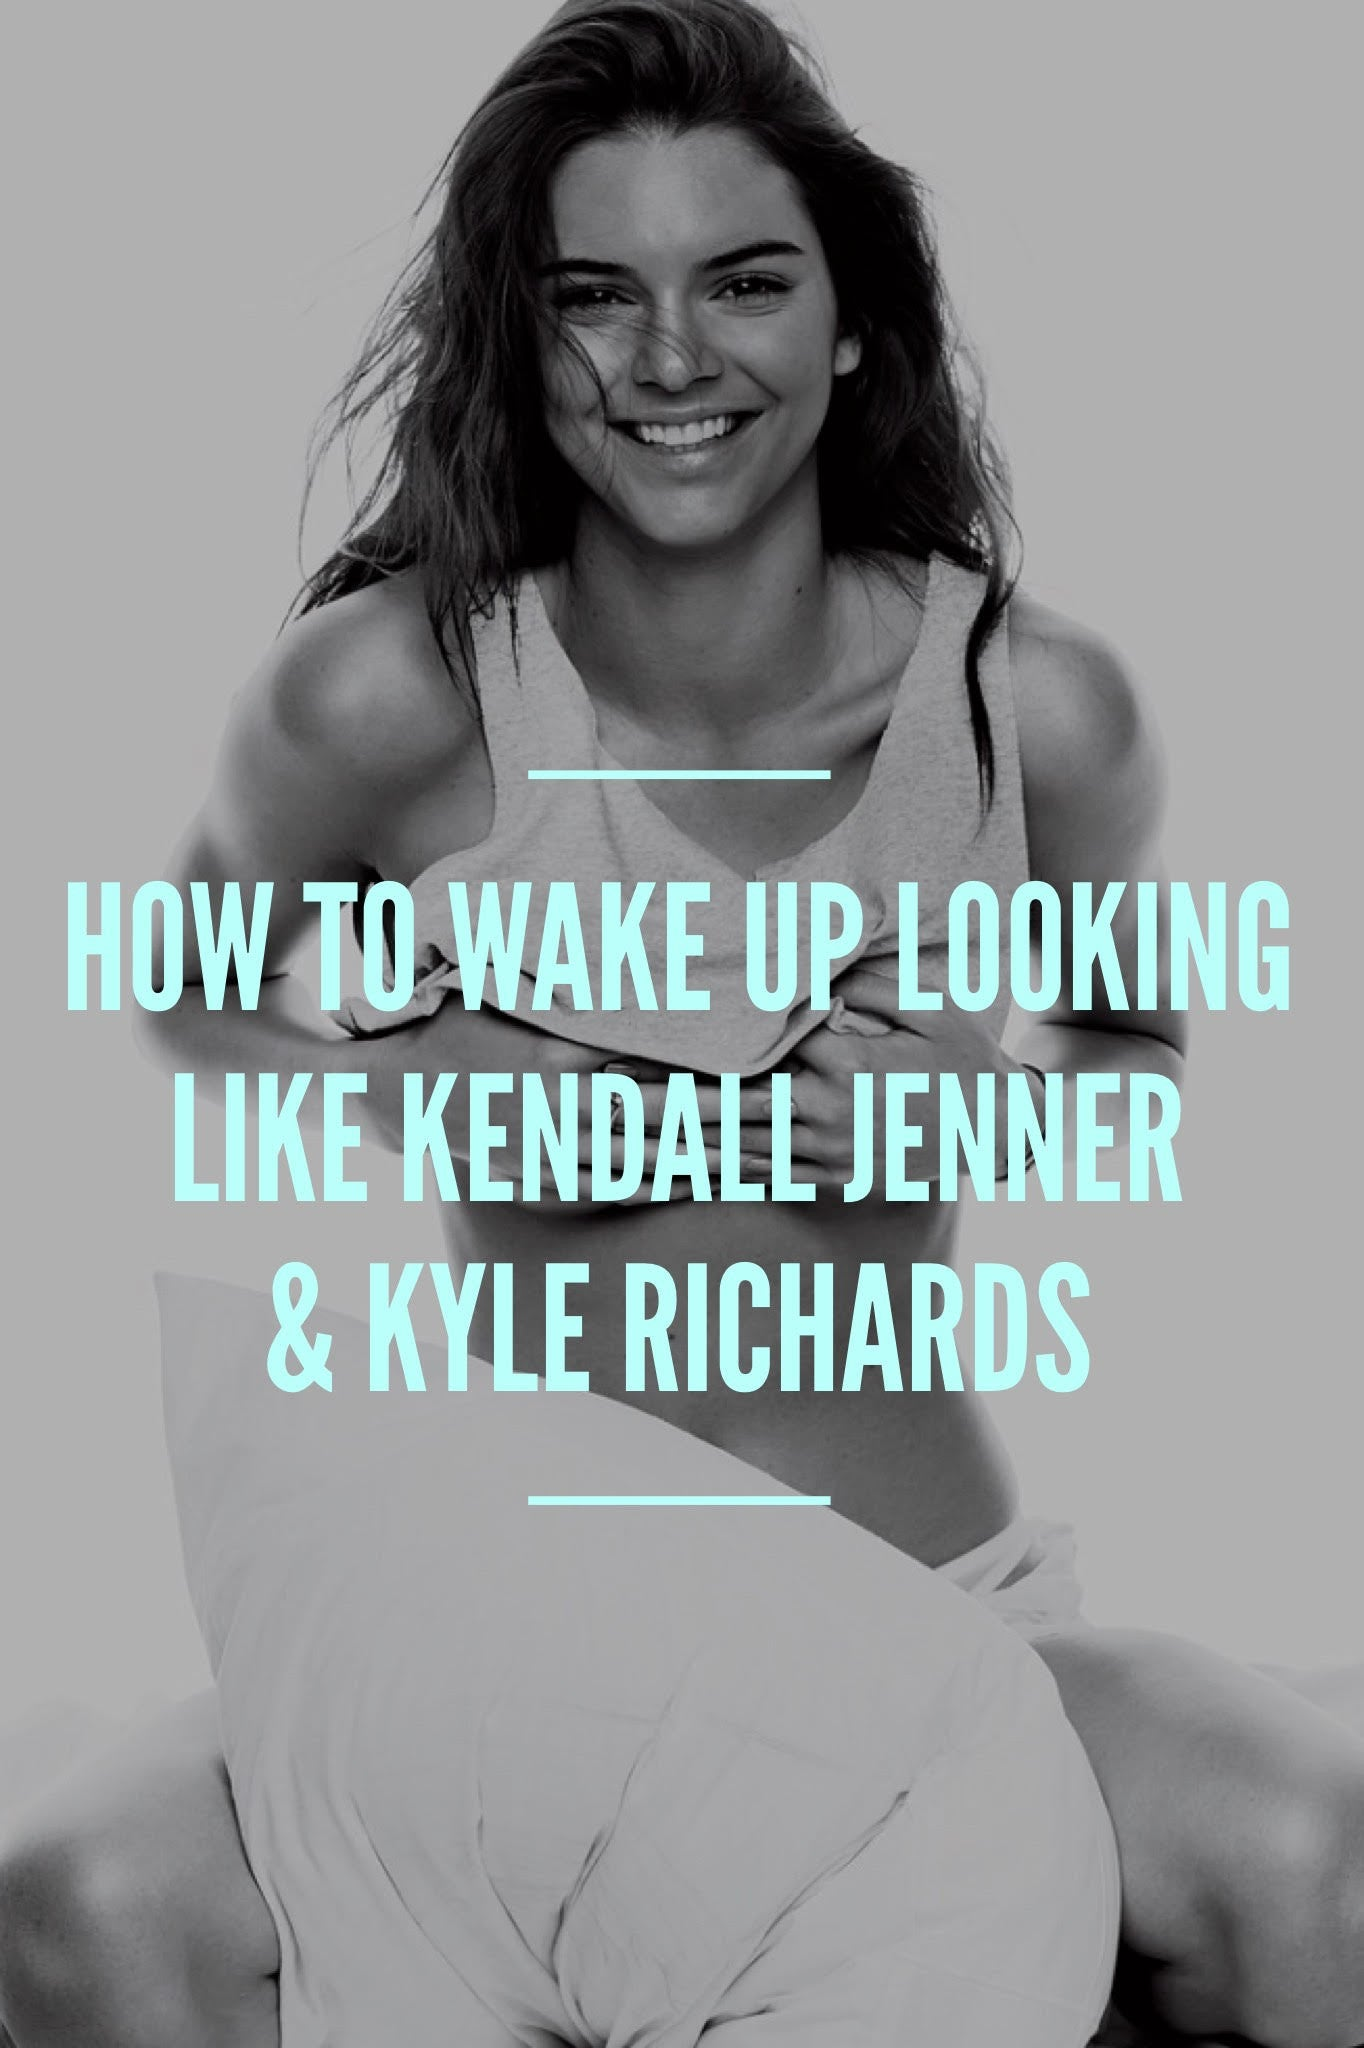 How To Wake Up Looking Like Kendall Jenner & Kyle Richards